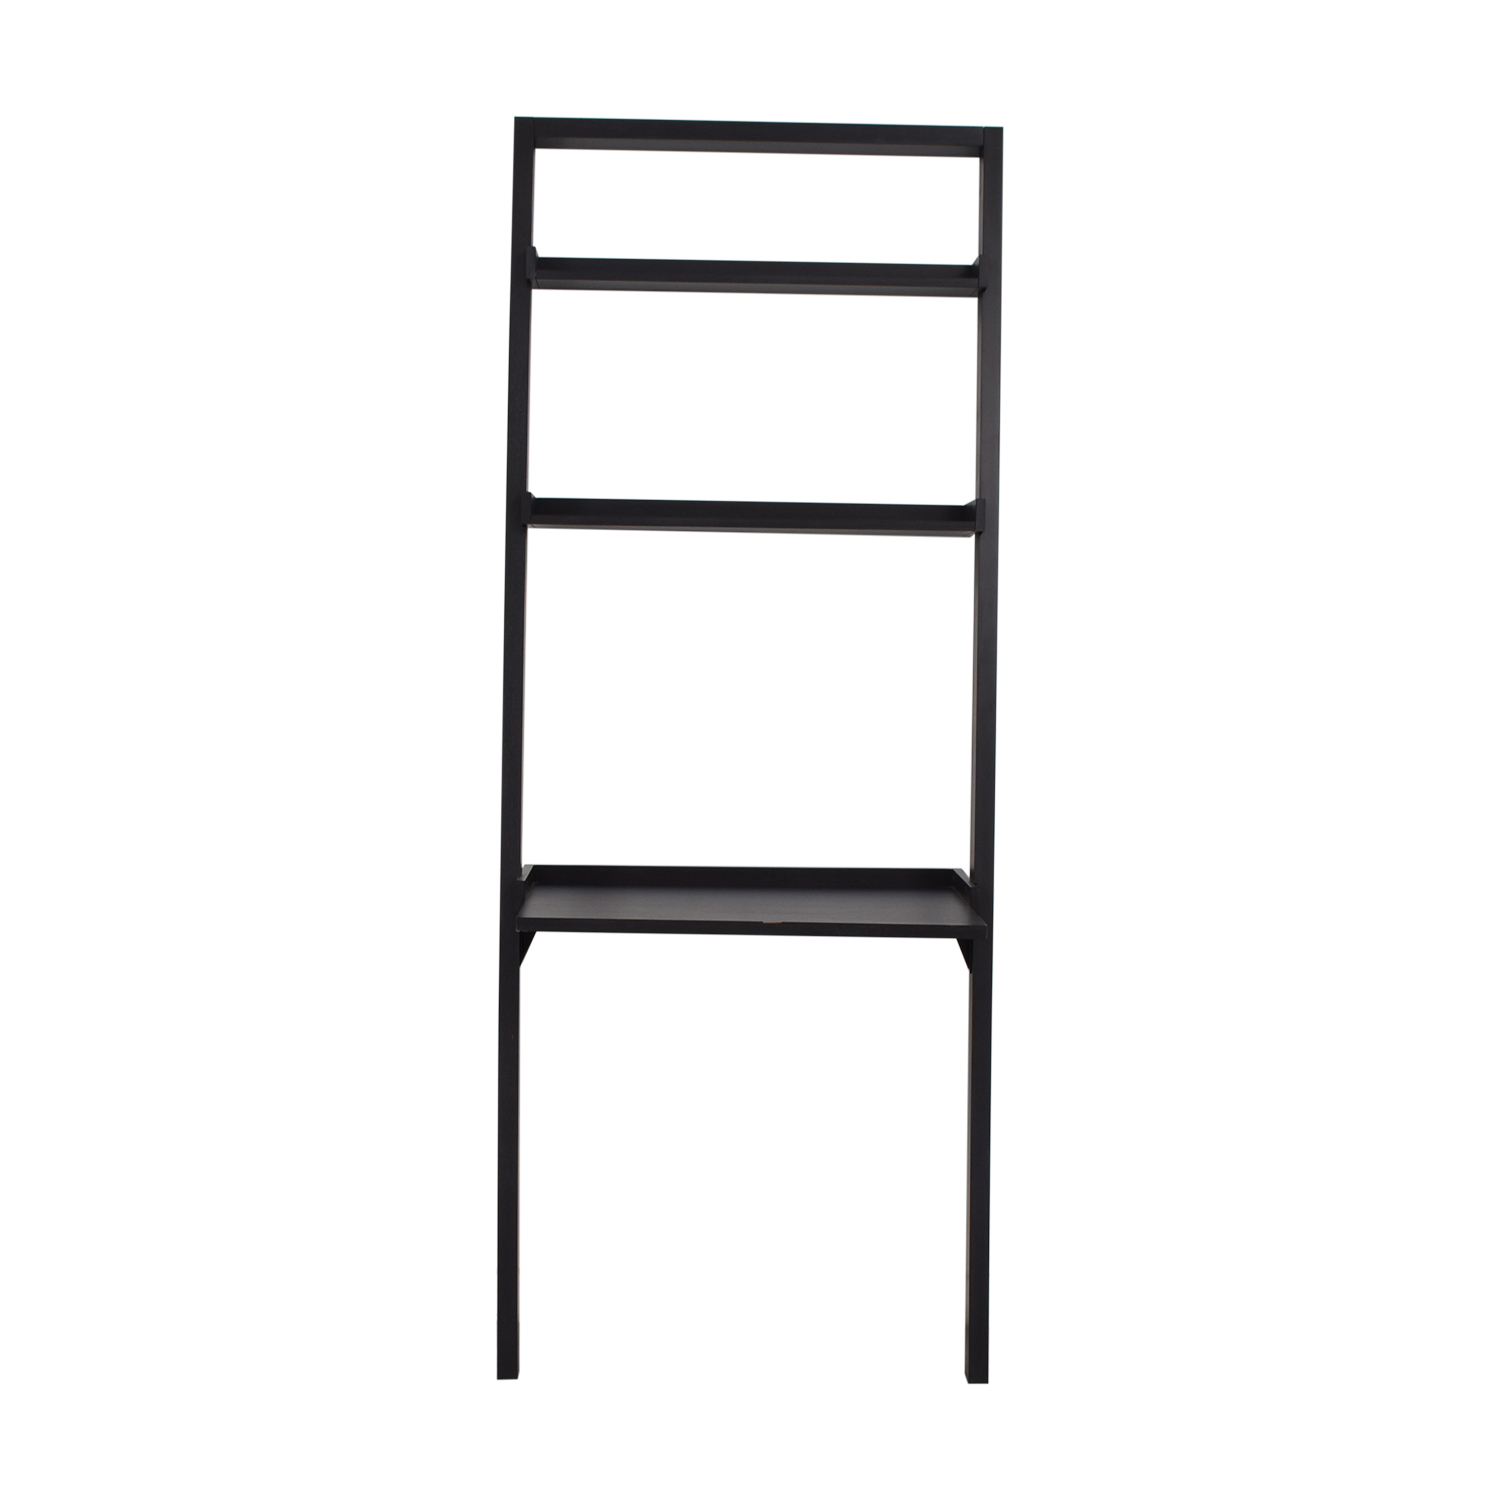 buy Crate & Barrel Sloane Black Leaning Desk Crate & Barrel Bookcases & Shelving